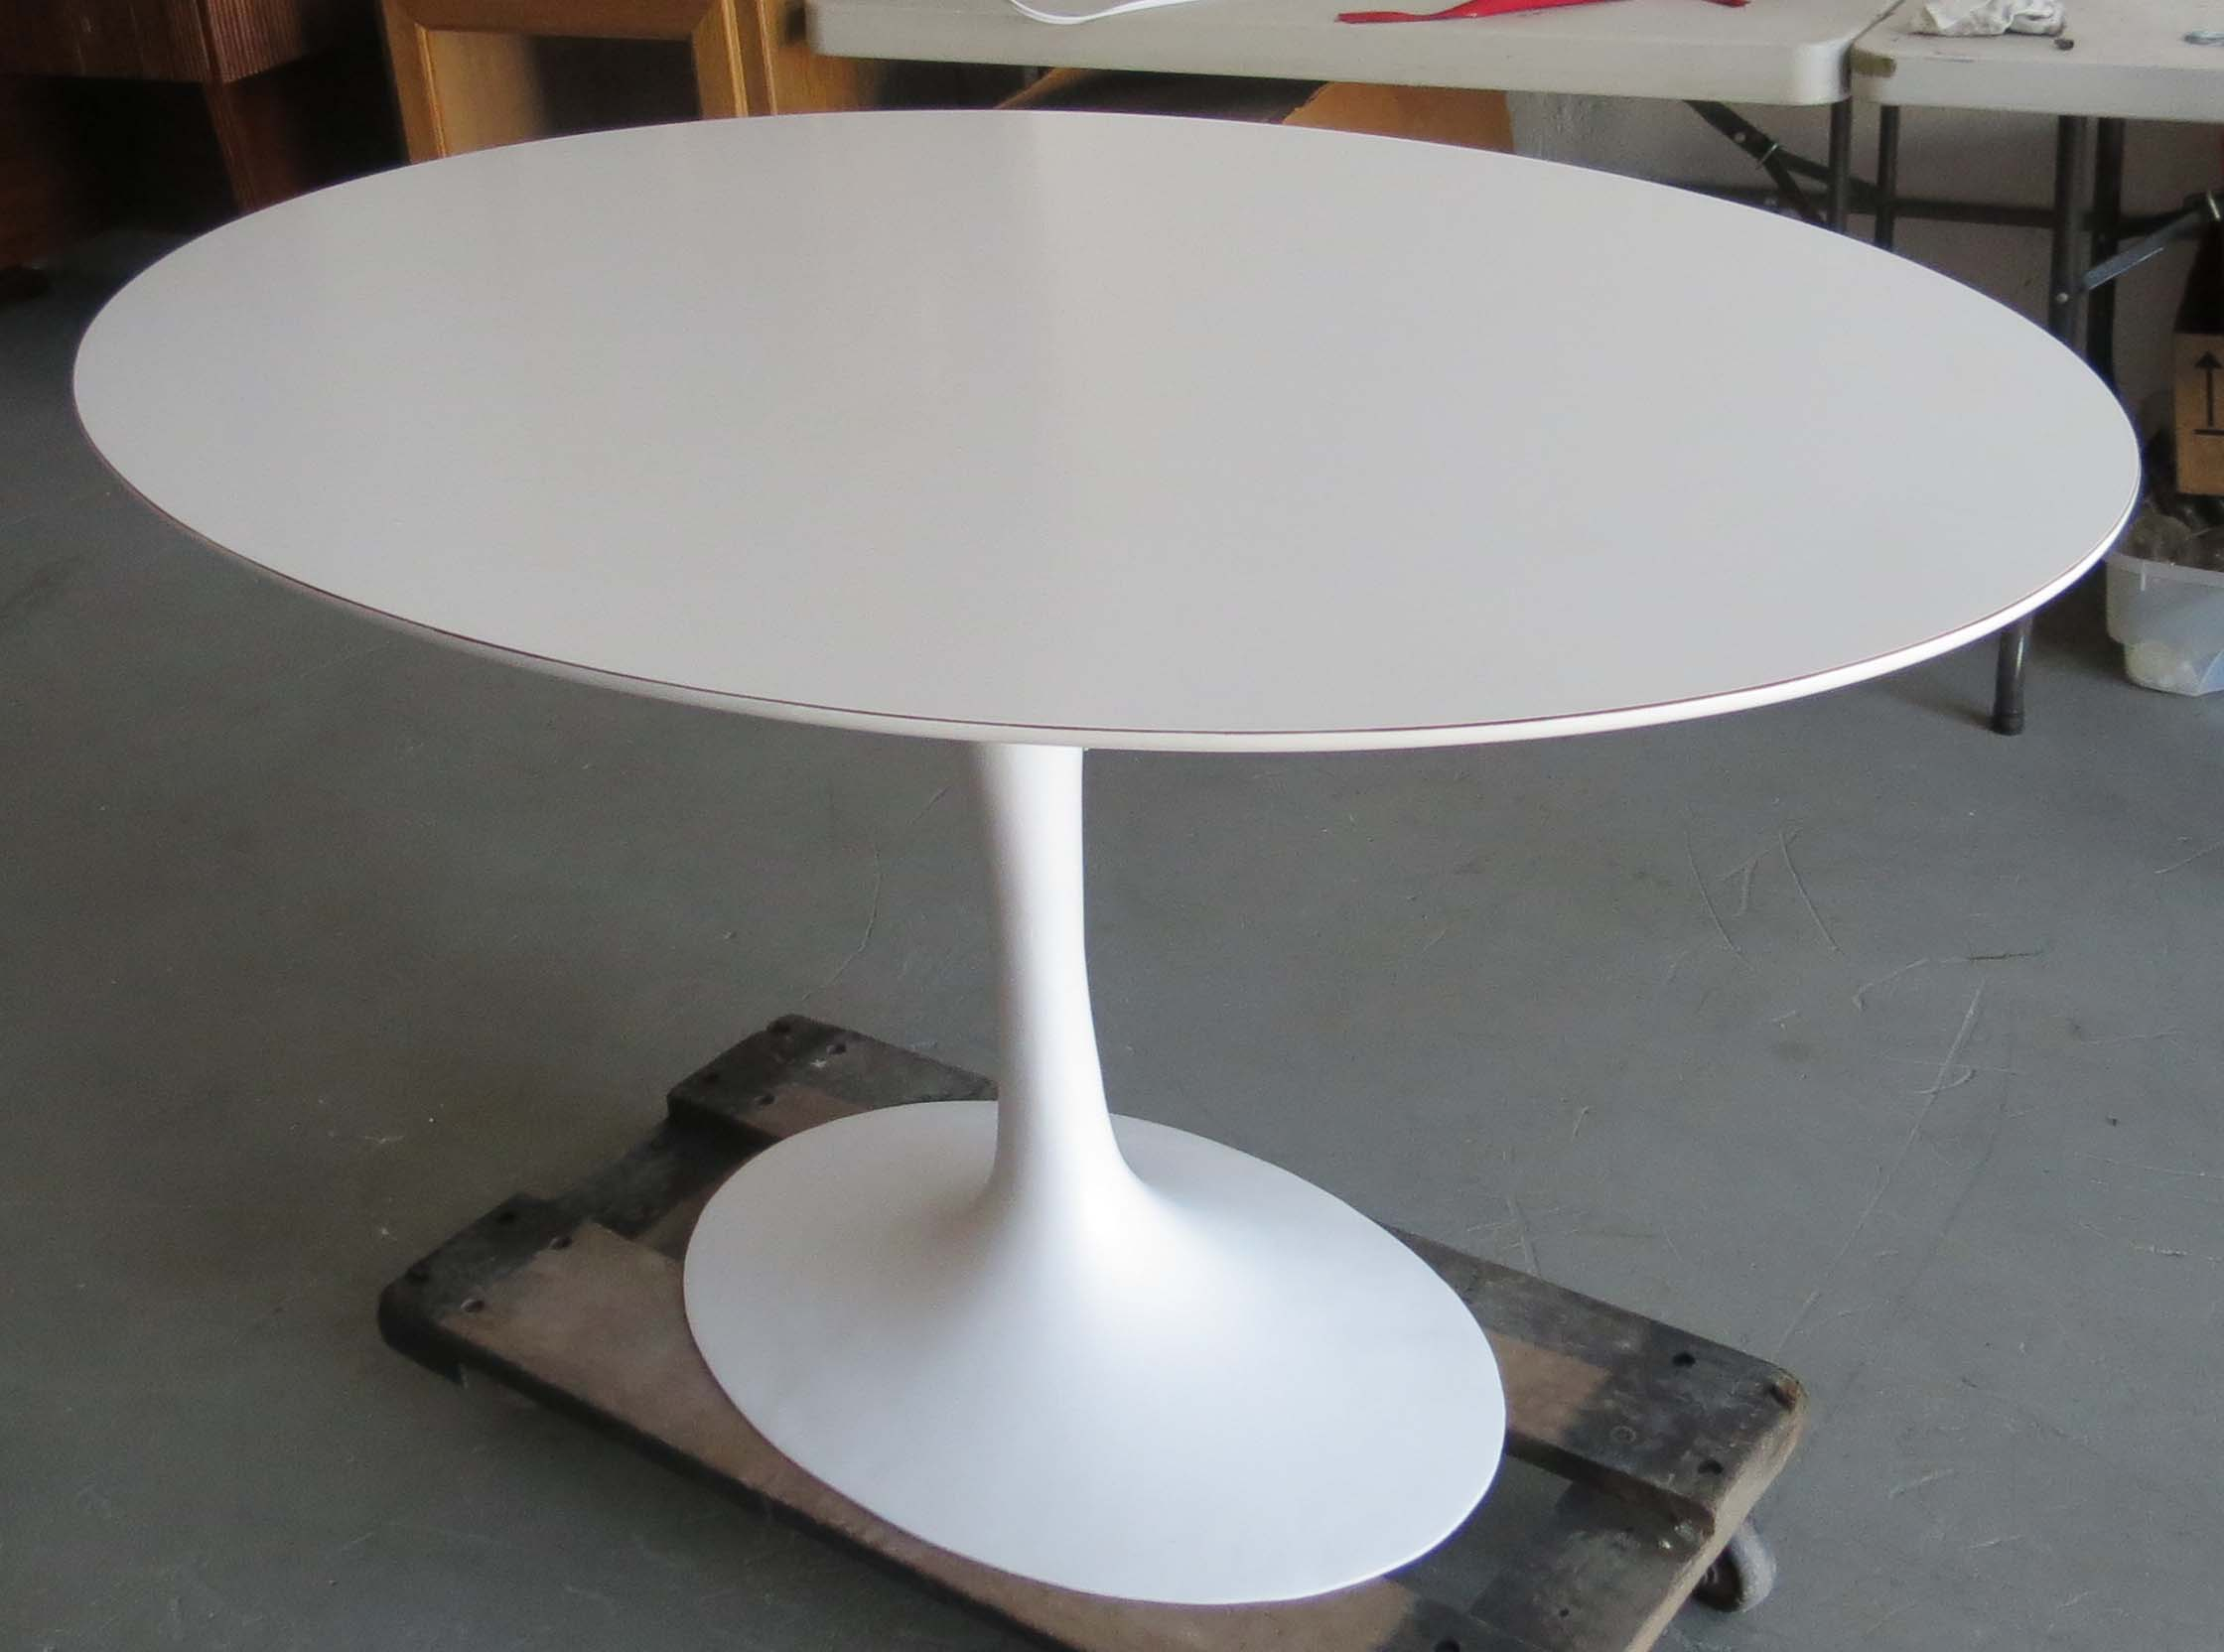 Saarinen oval tulip table modernism for Table moderne a rallonge